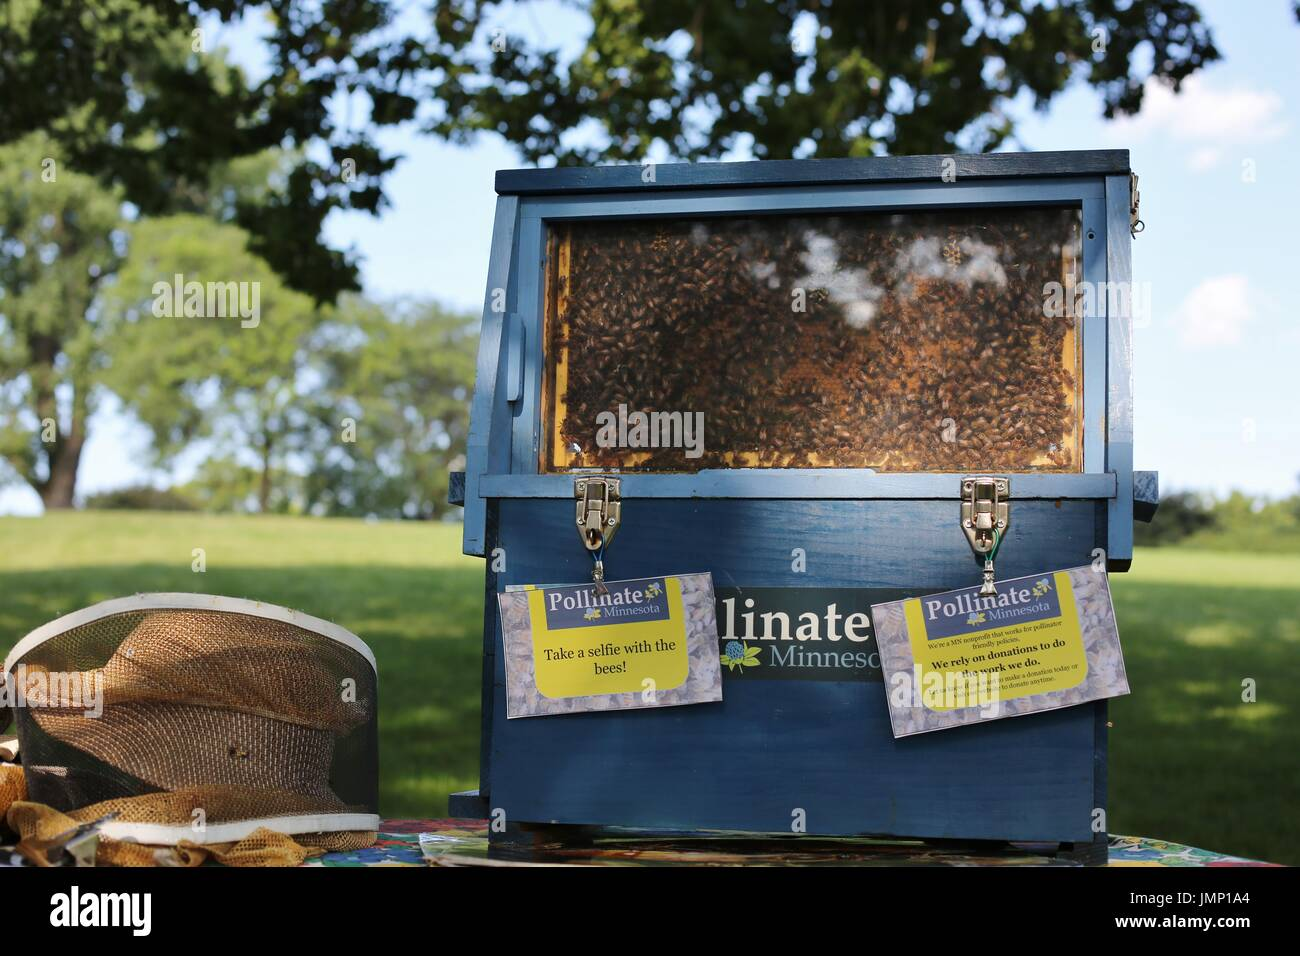 A selfie station, with bees, at the pollinator party in Minneapolis, Minnesota, USA. - Stock Image